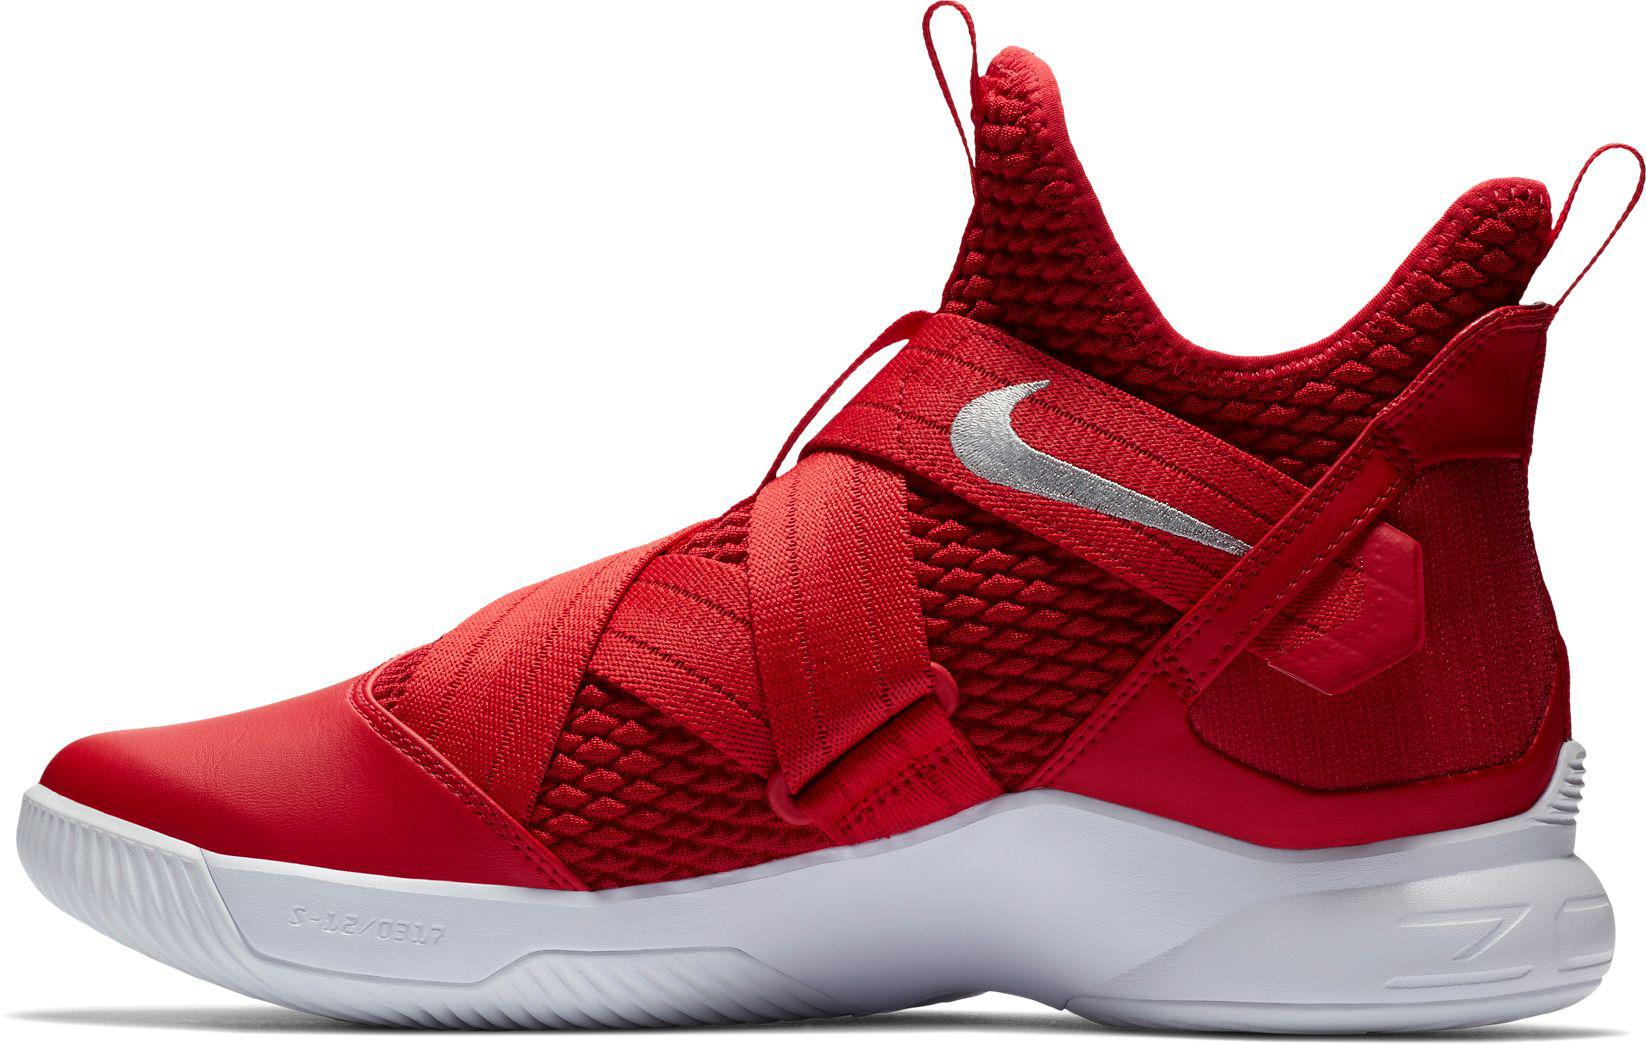 new concept dad52 c0183 Lyst - Nike Zoom Lebron Soldier Xii Tb Basketball Shoes in Red for Men